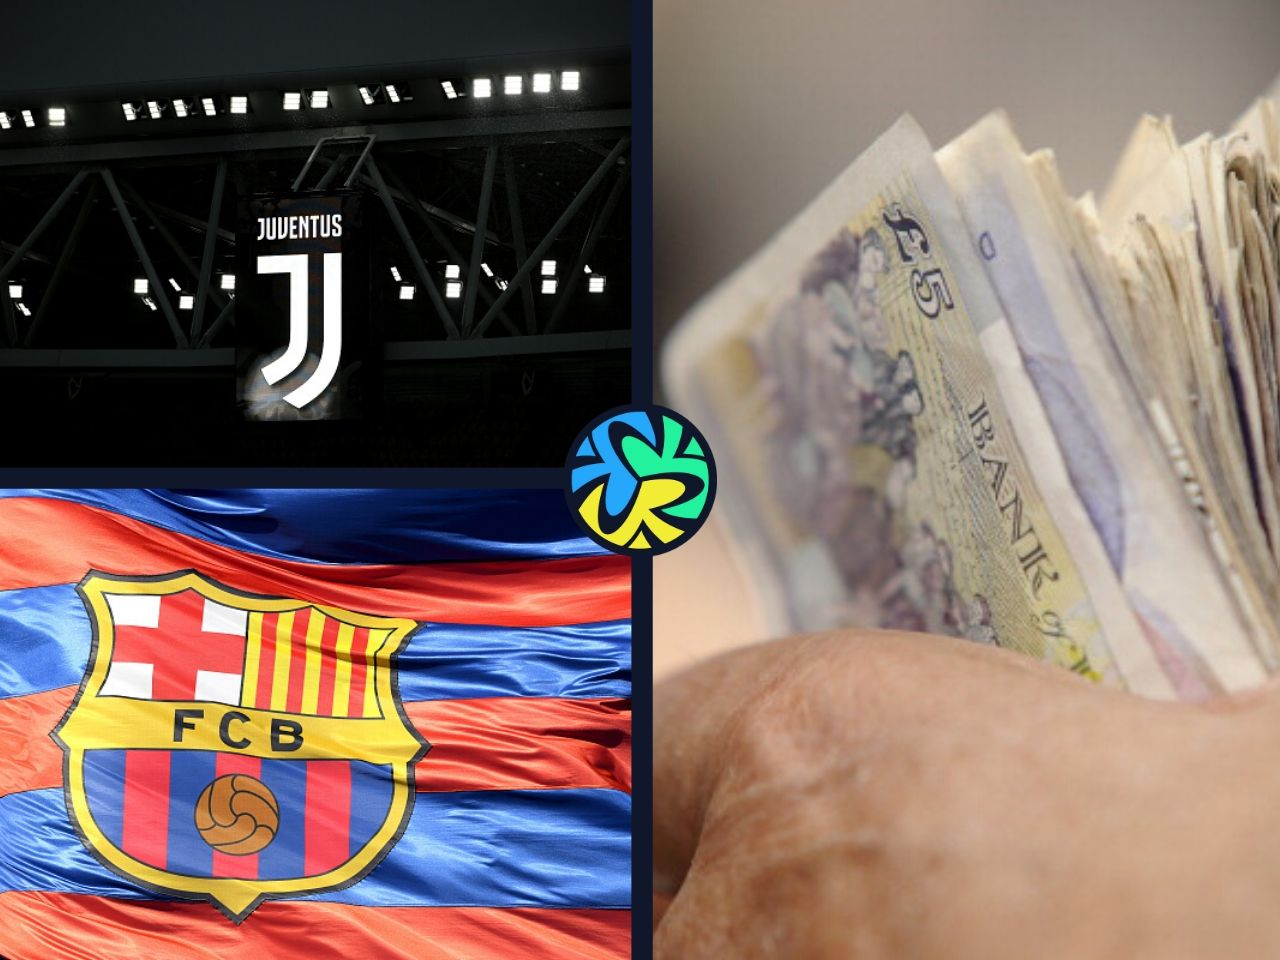 Top 10 richest football clubs around the world in 2020